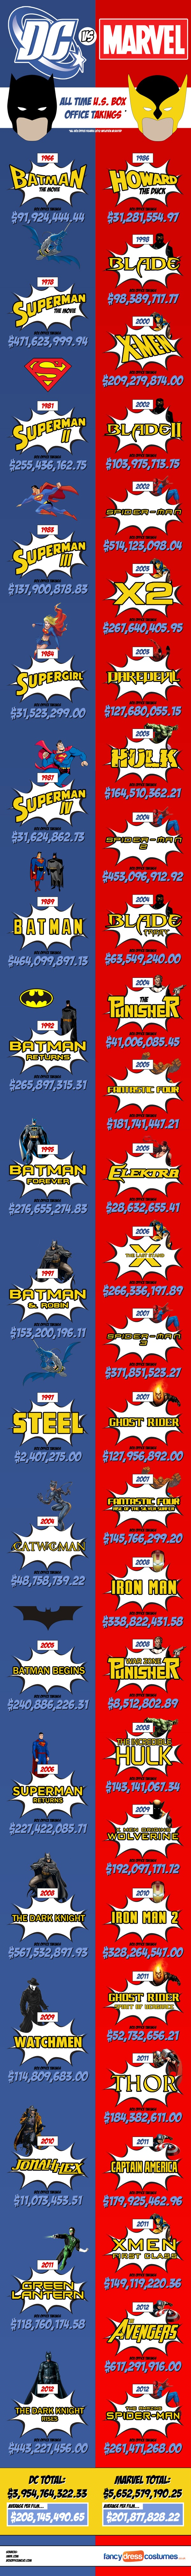 infografía Marvel vs DC